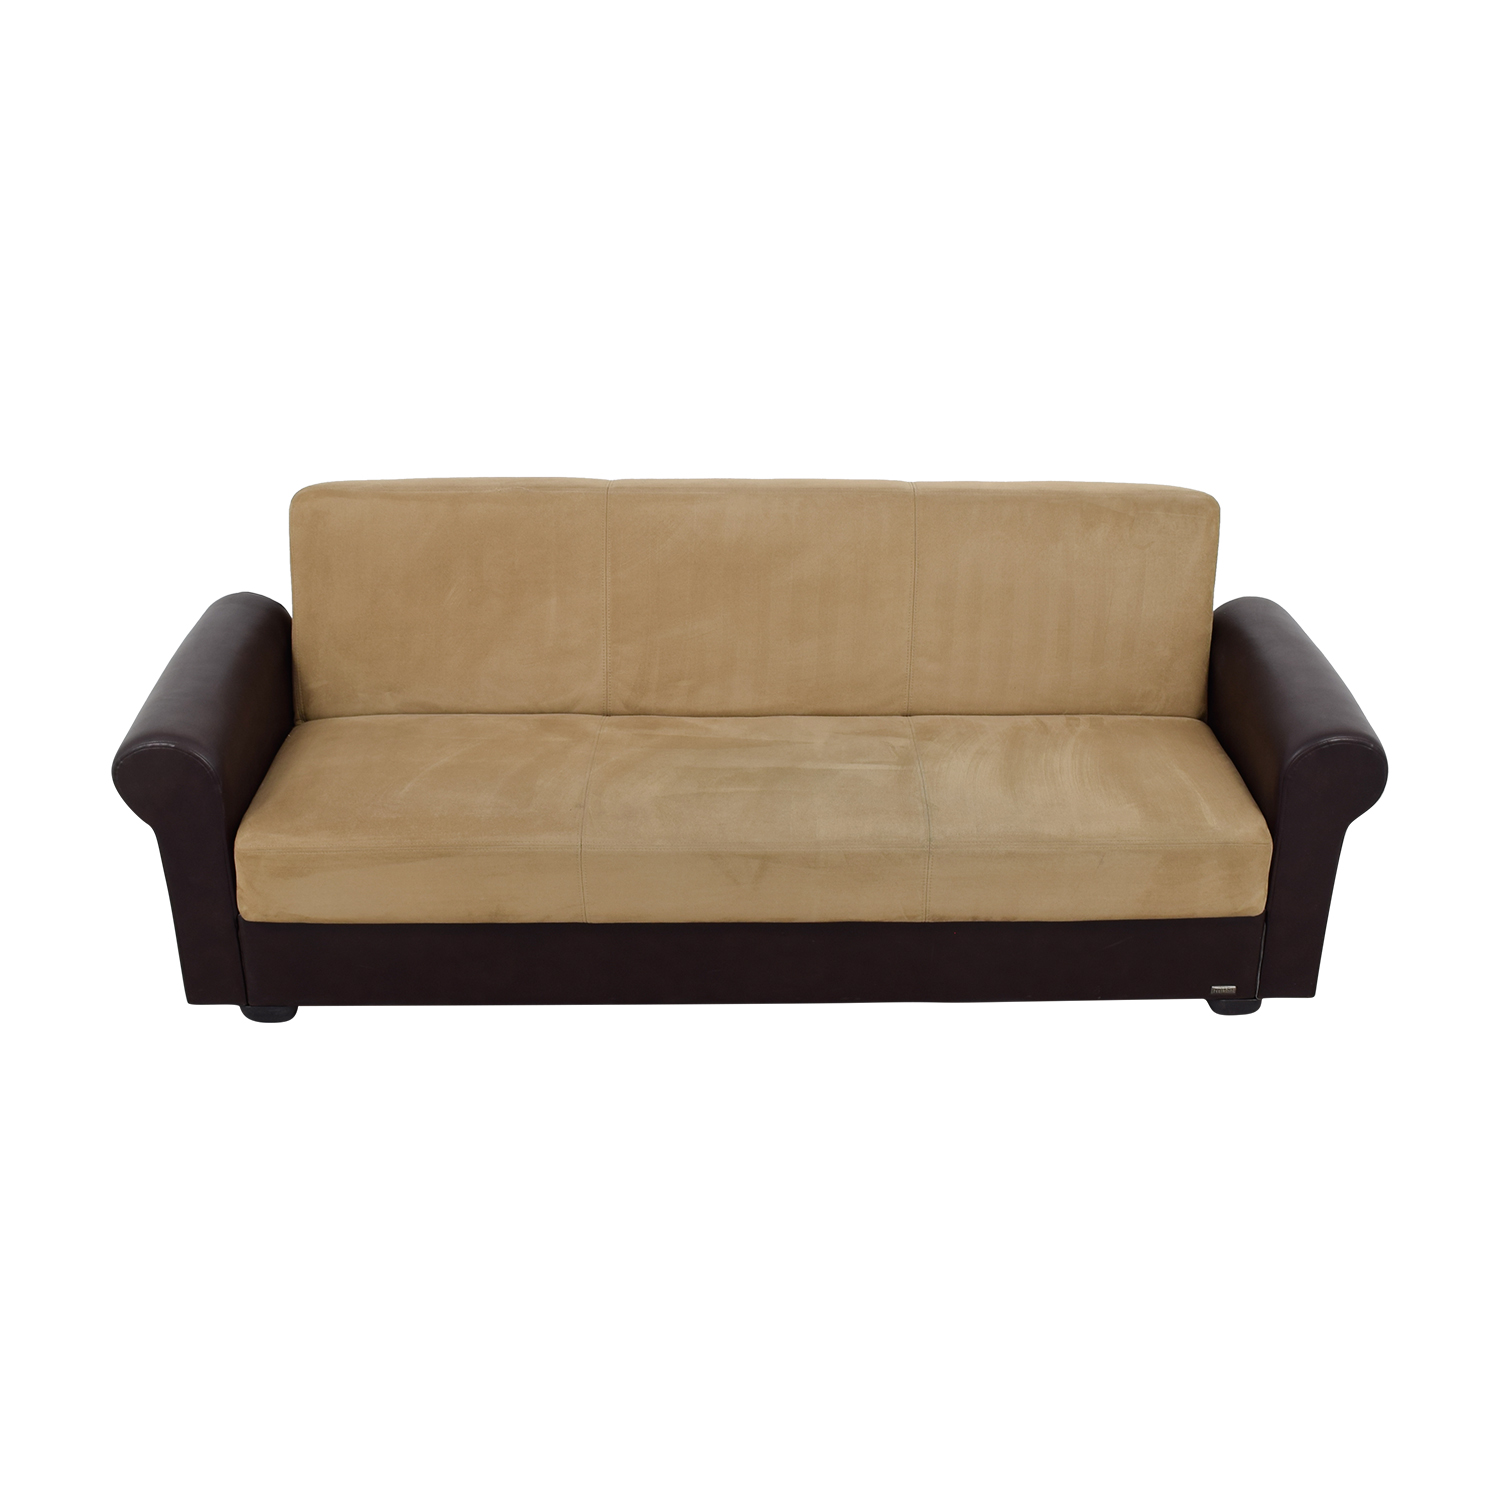 Istikbal Istikbal Brown Leather and Tan Microfiber Convertible Sofa used